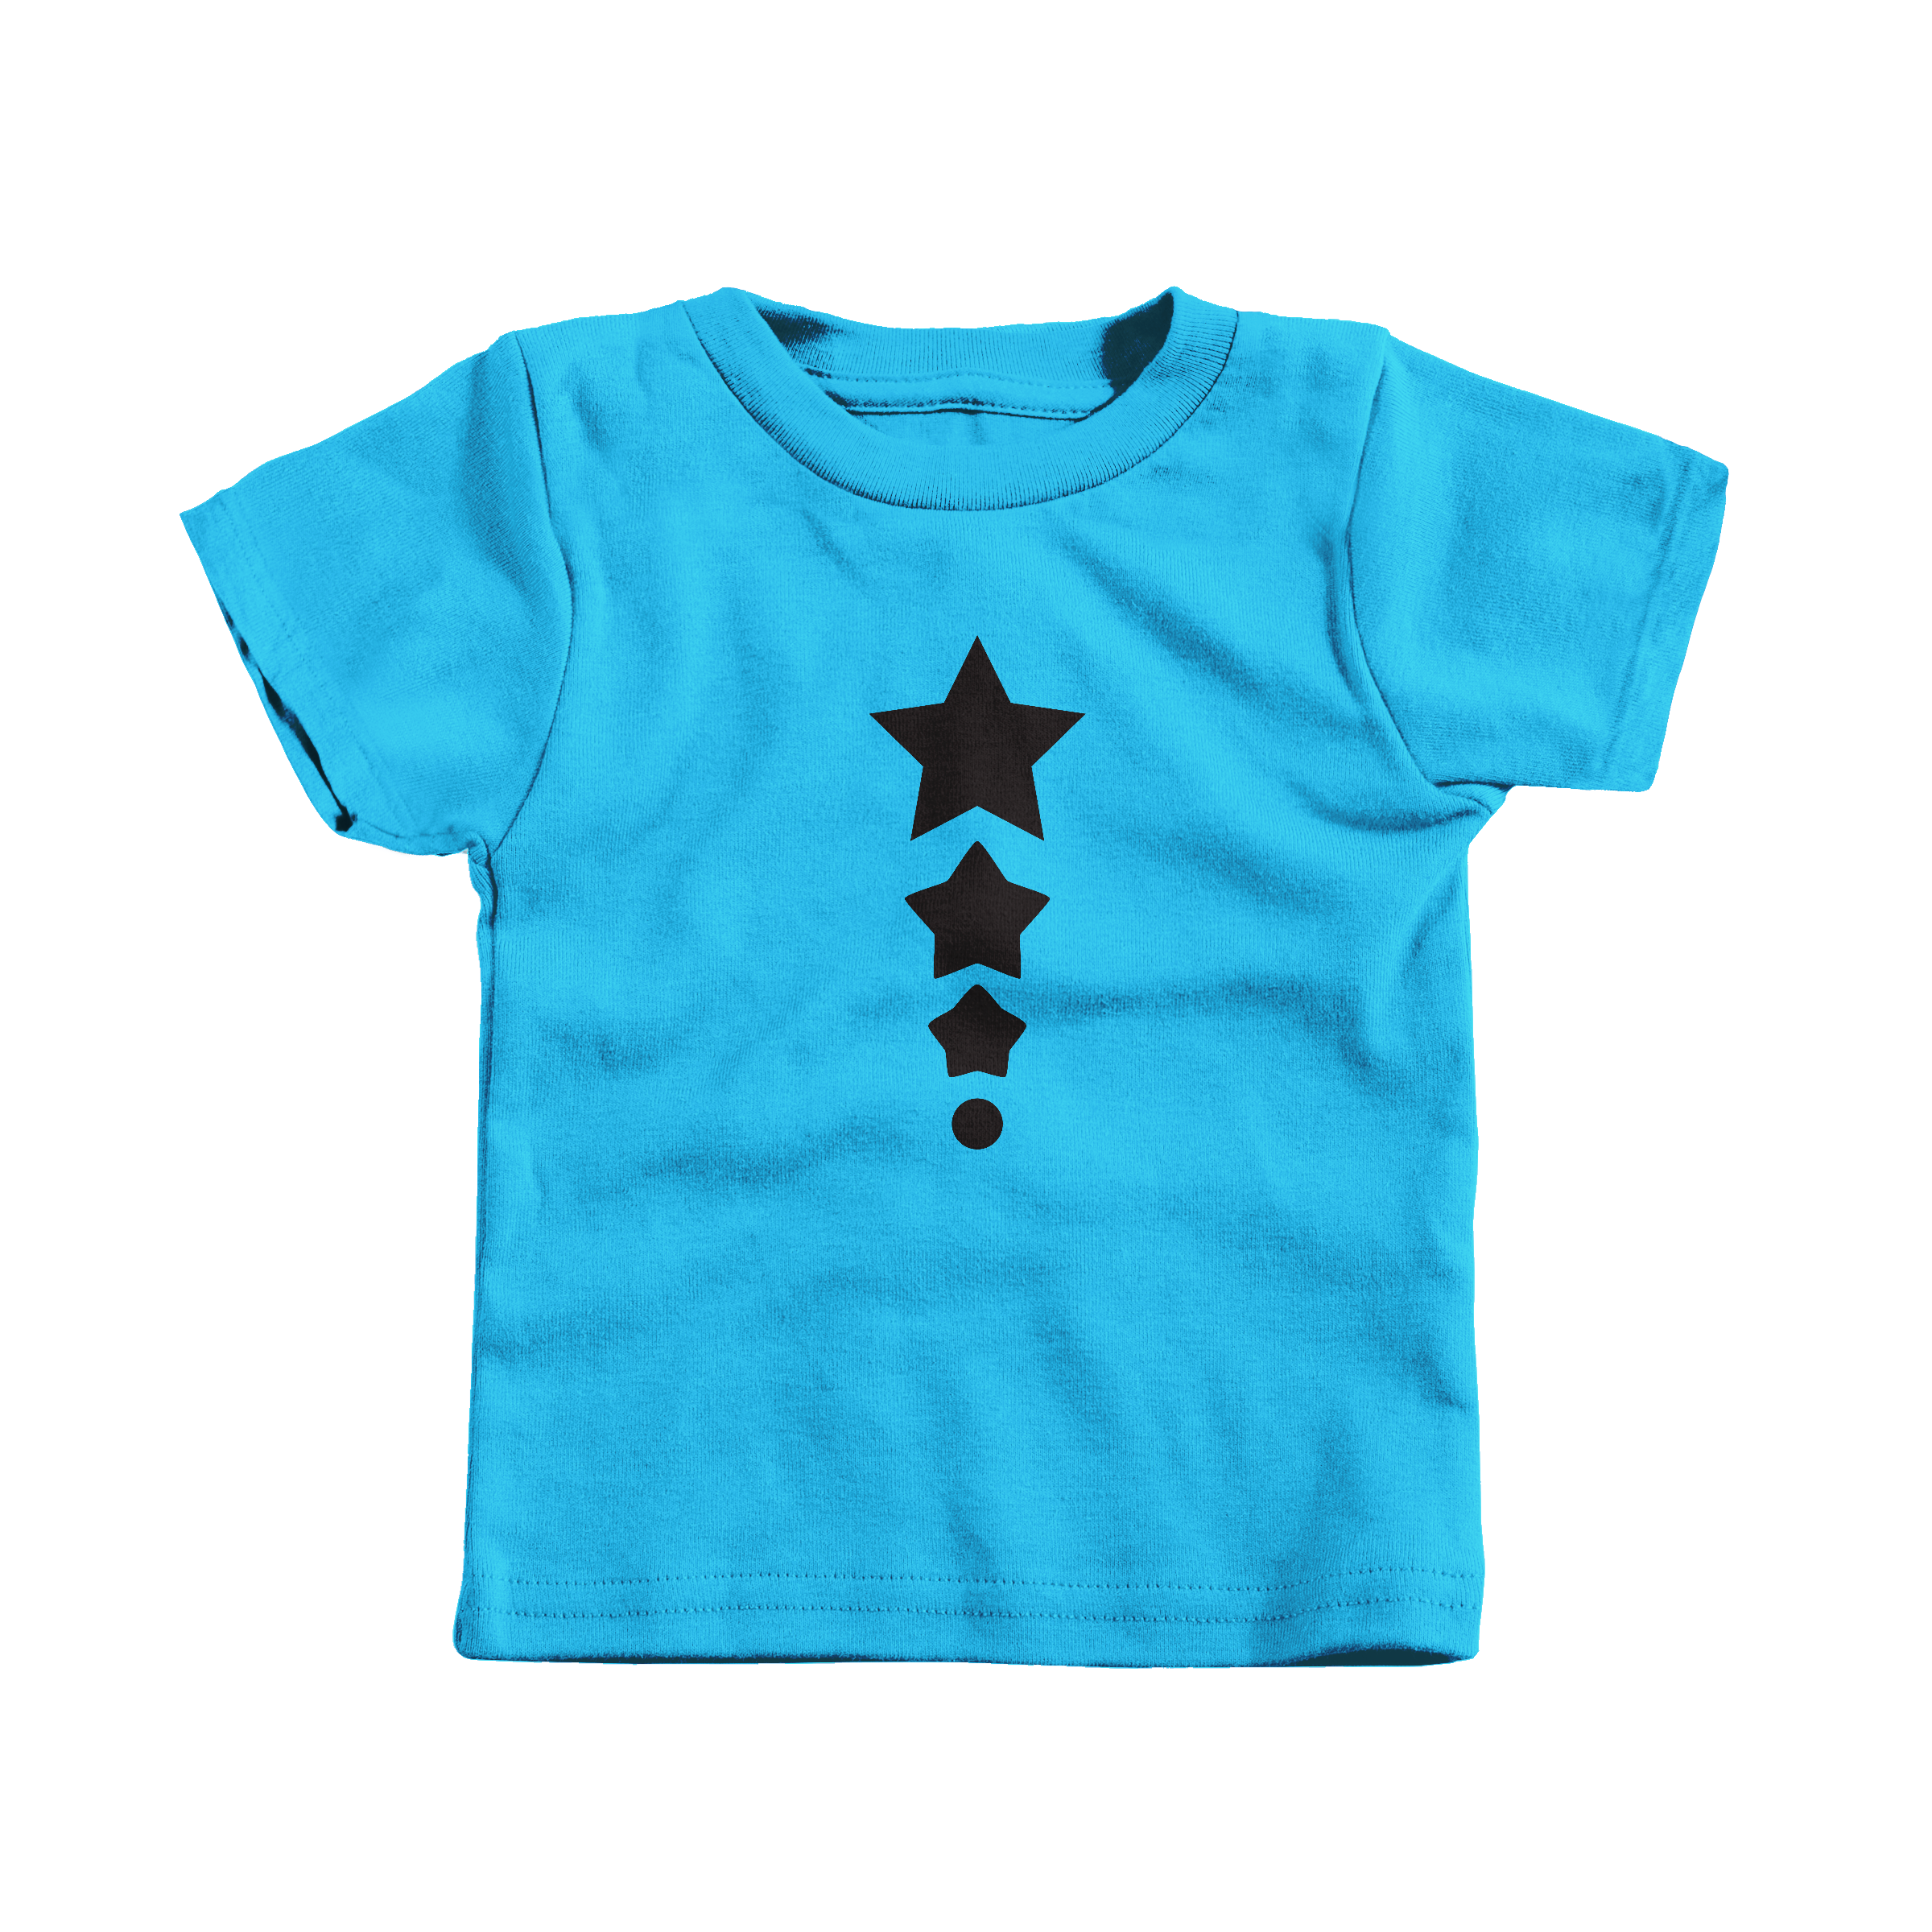 Becoming a Star Turquoise (T-Shirt)